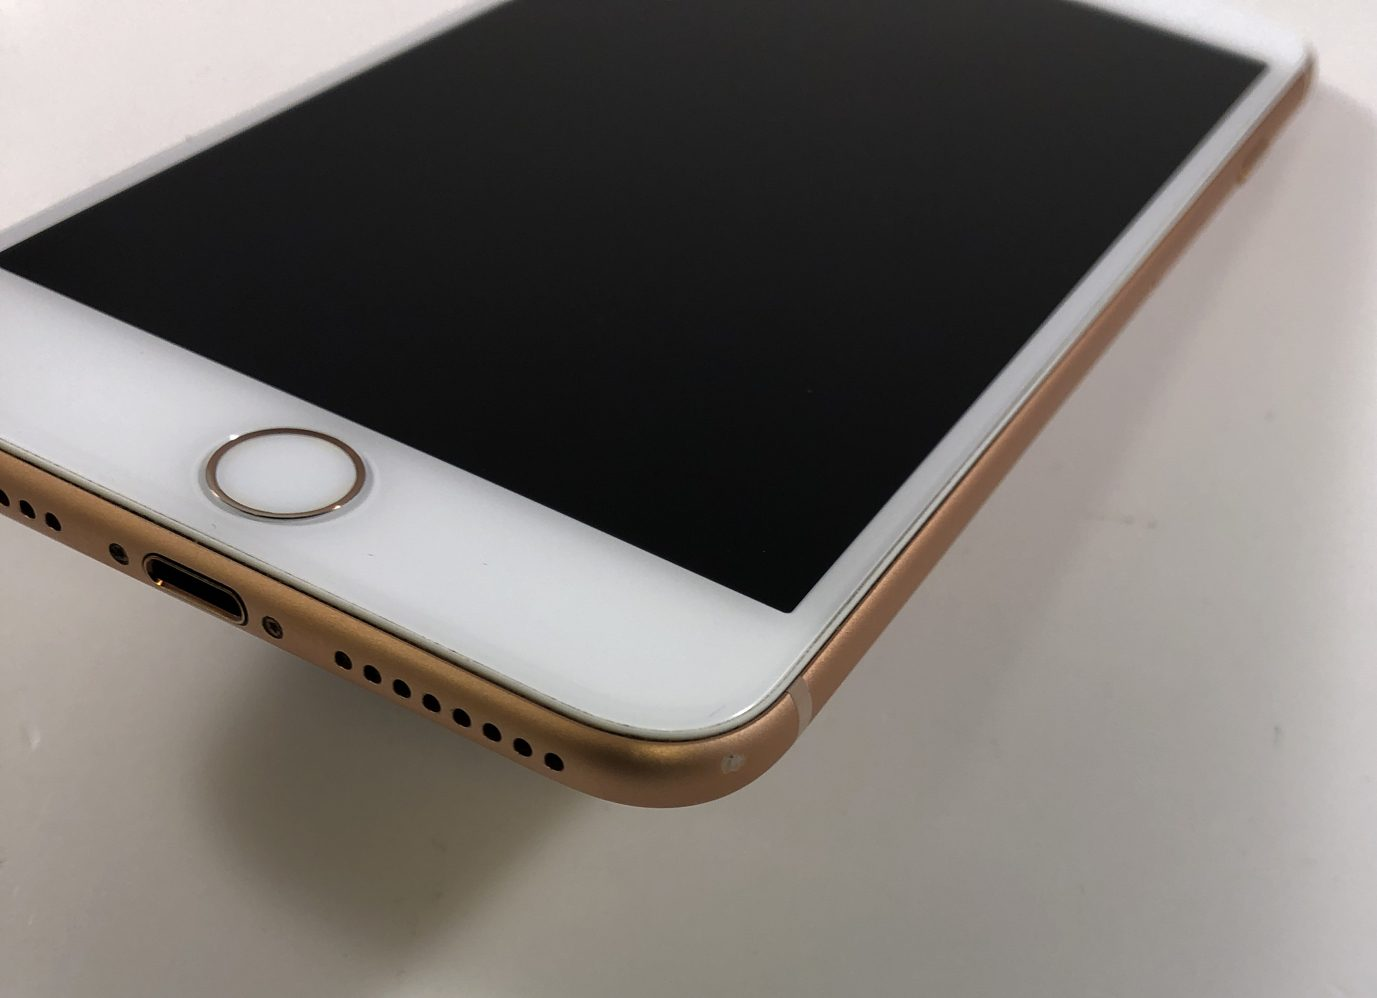 iPhone 8 Plus 64GB, 64GB, Gold, bild 3